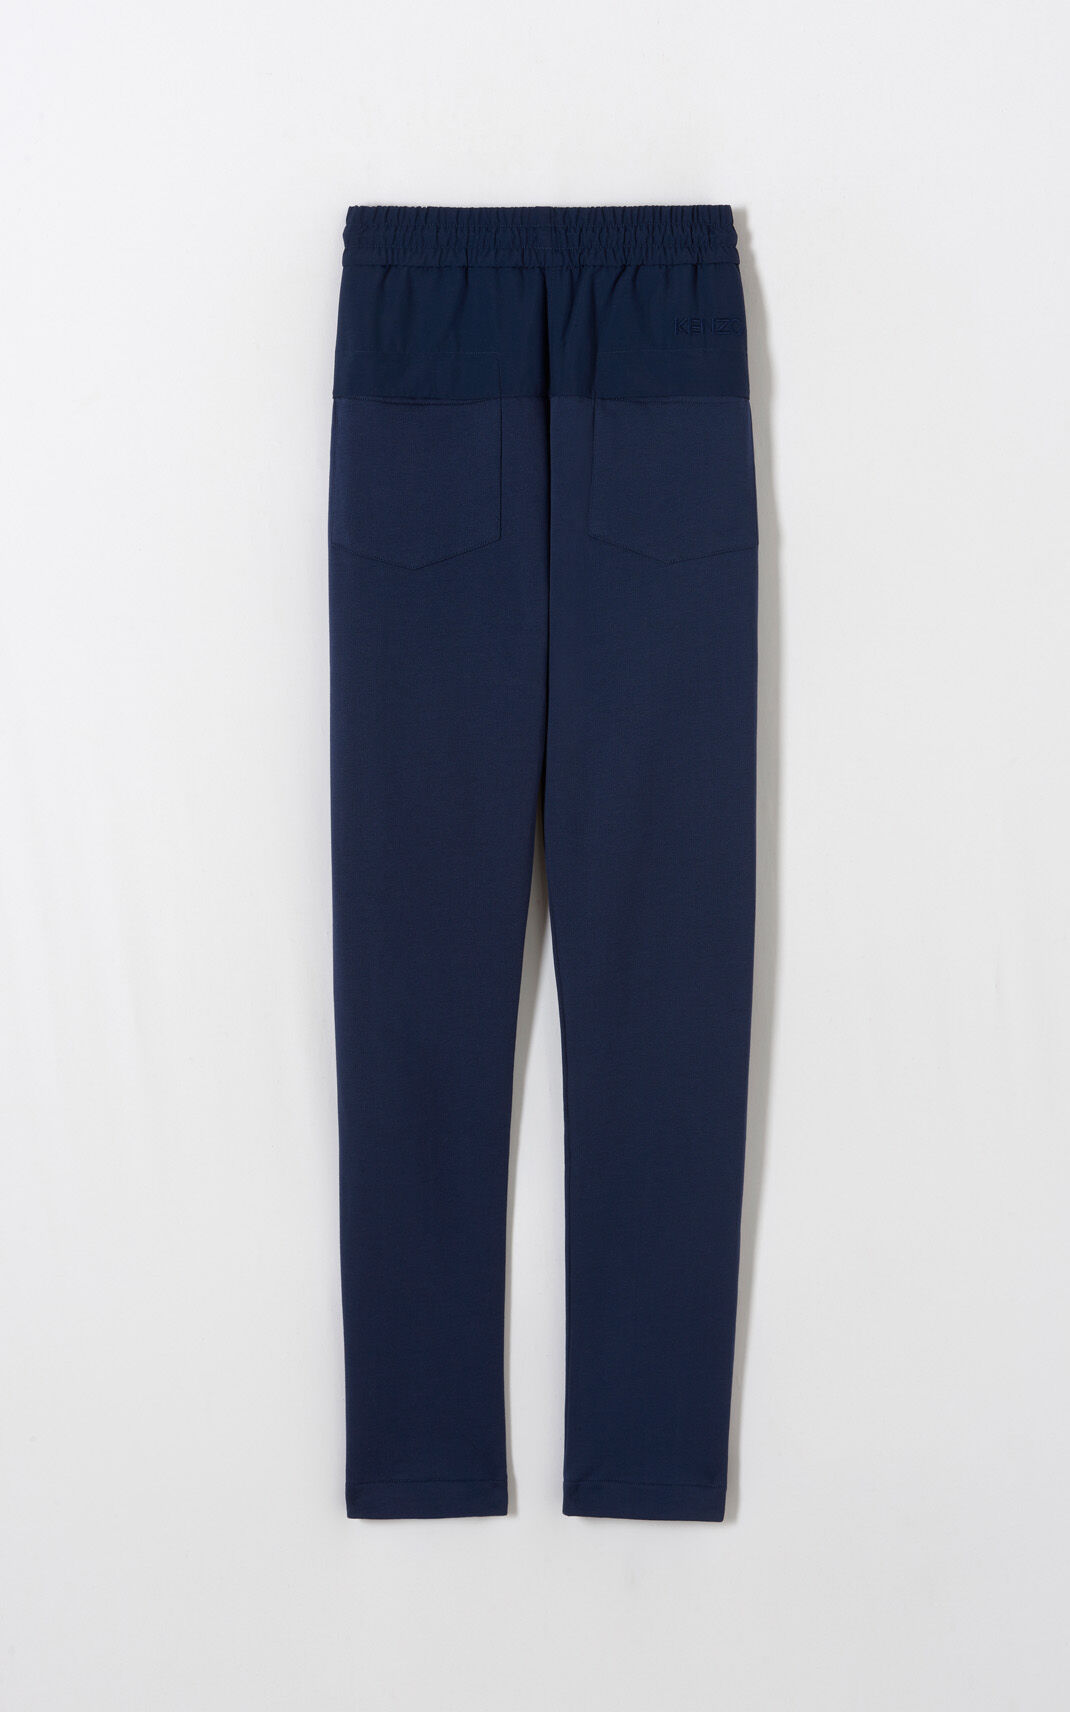 INK Fleece trousers for women KENZO